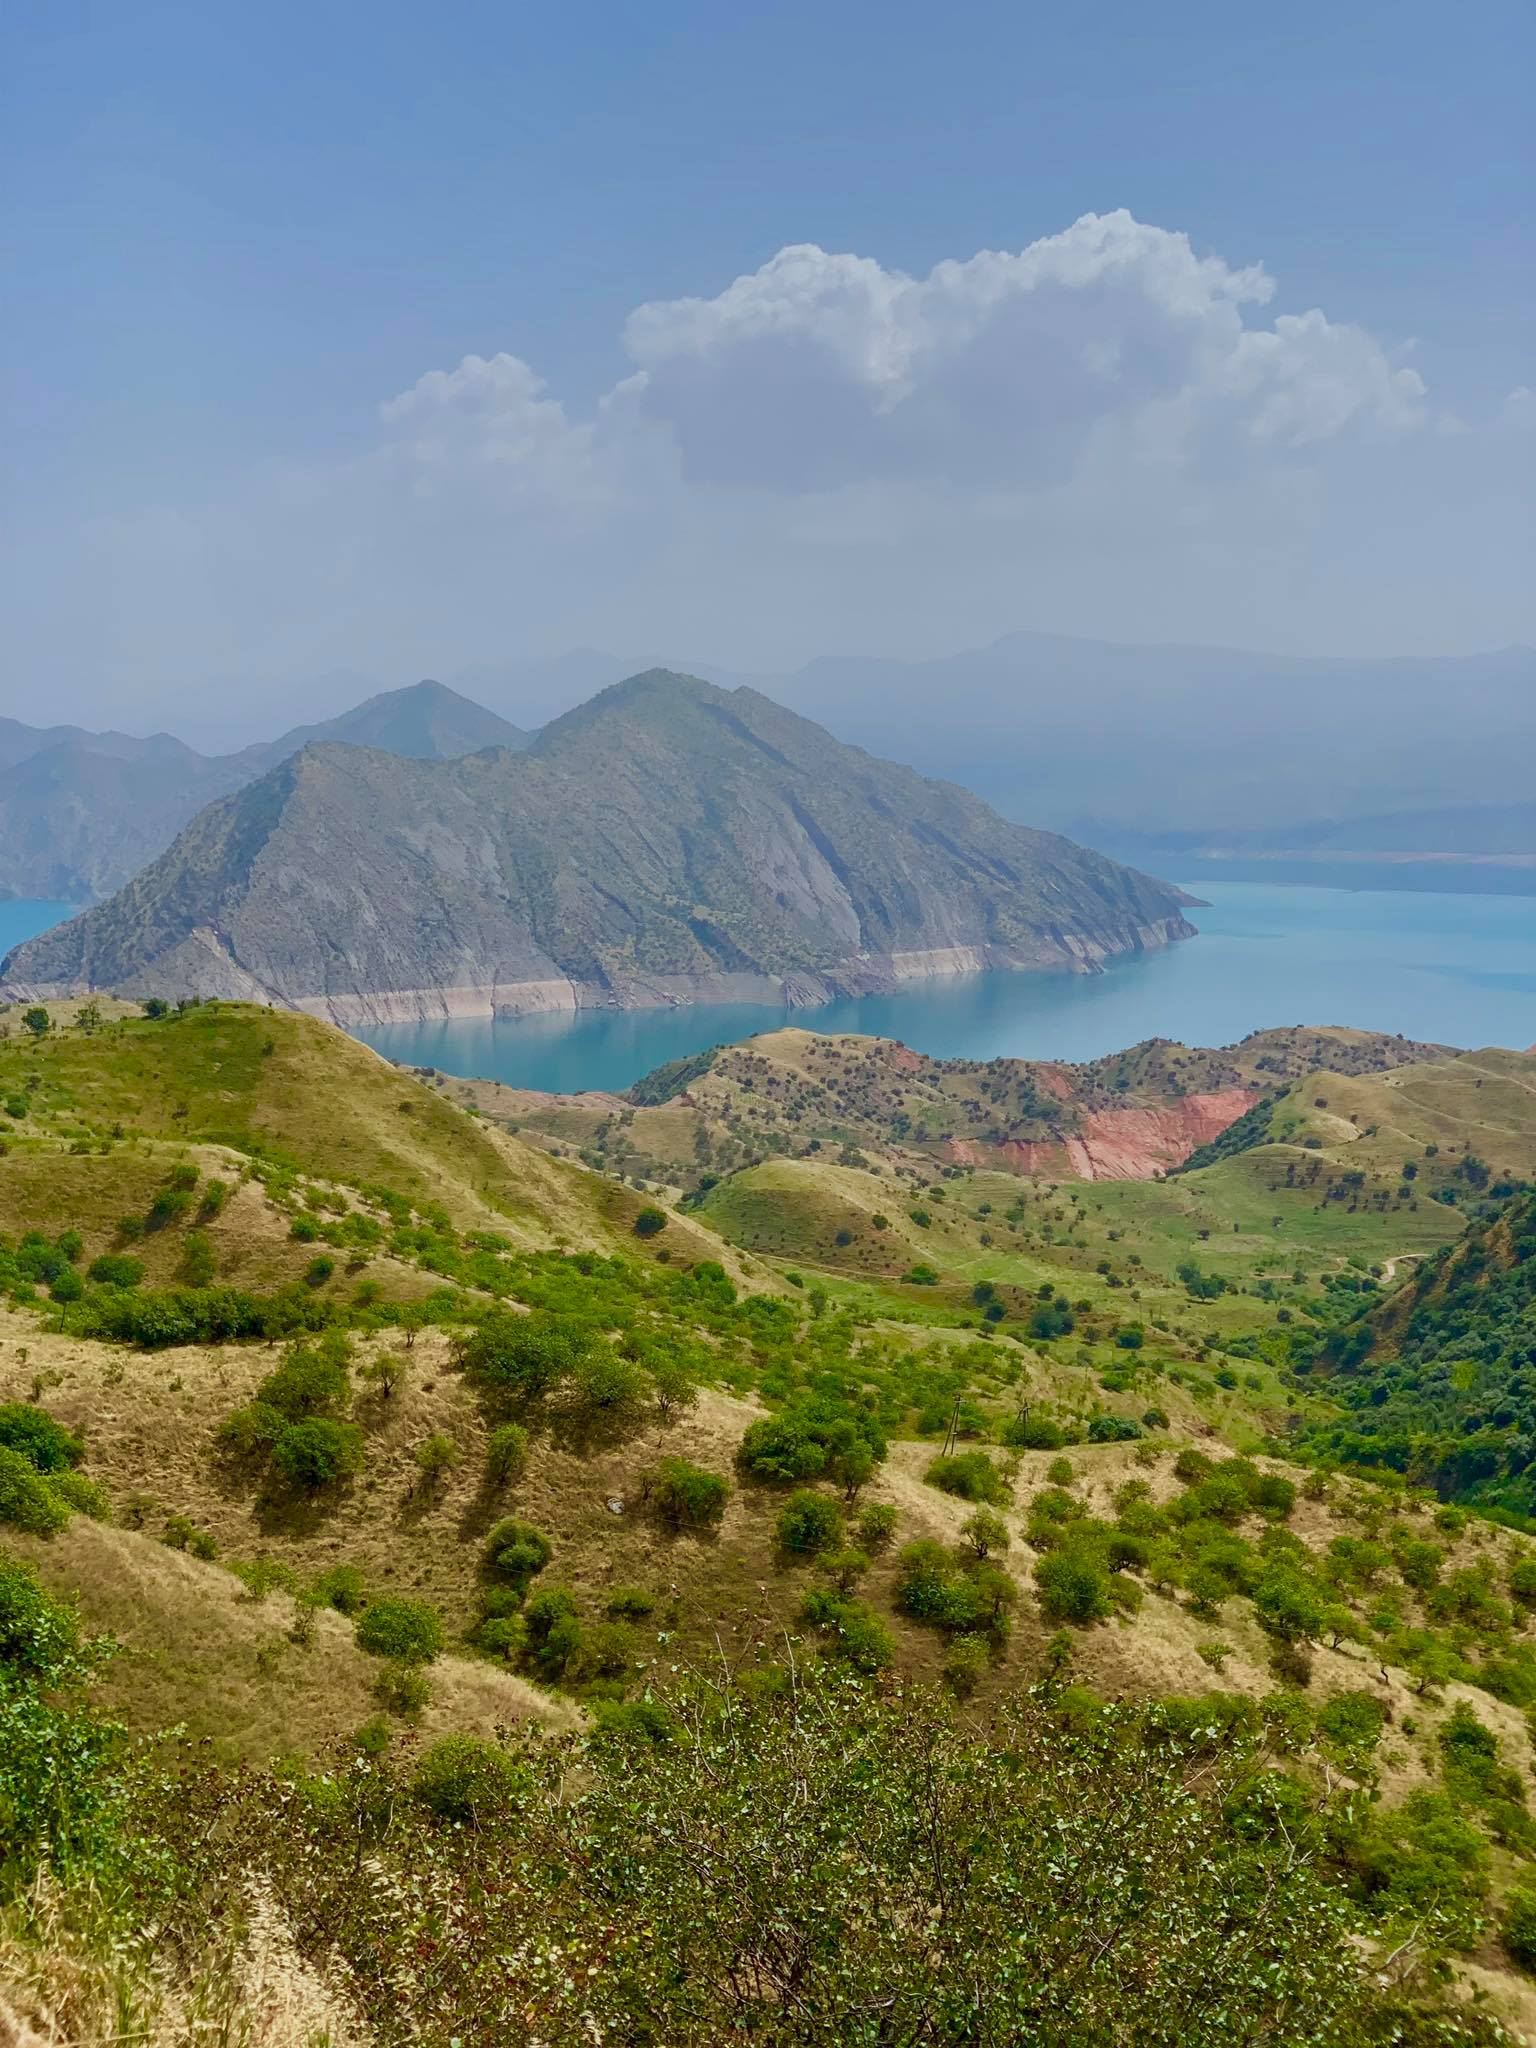 13 Things You Should Not Miss When You Travel the Pamir Highway in Tajikistan2